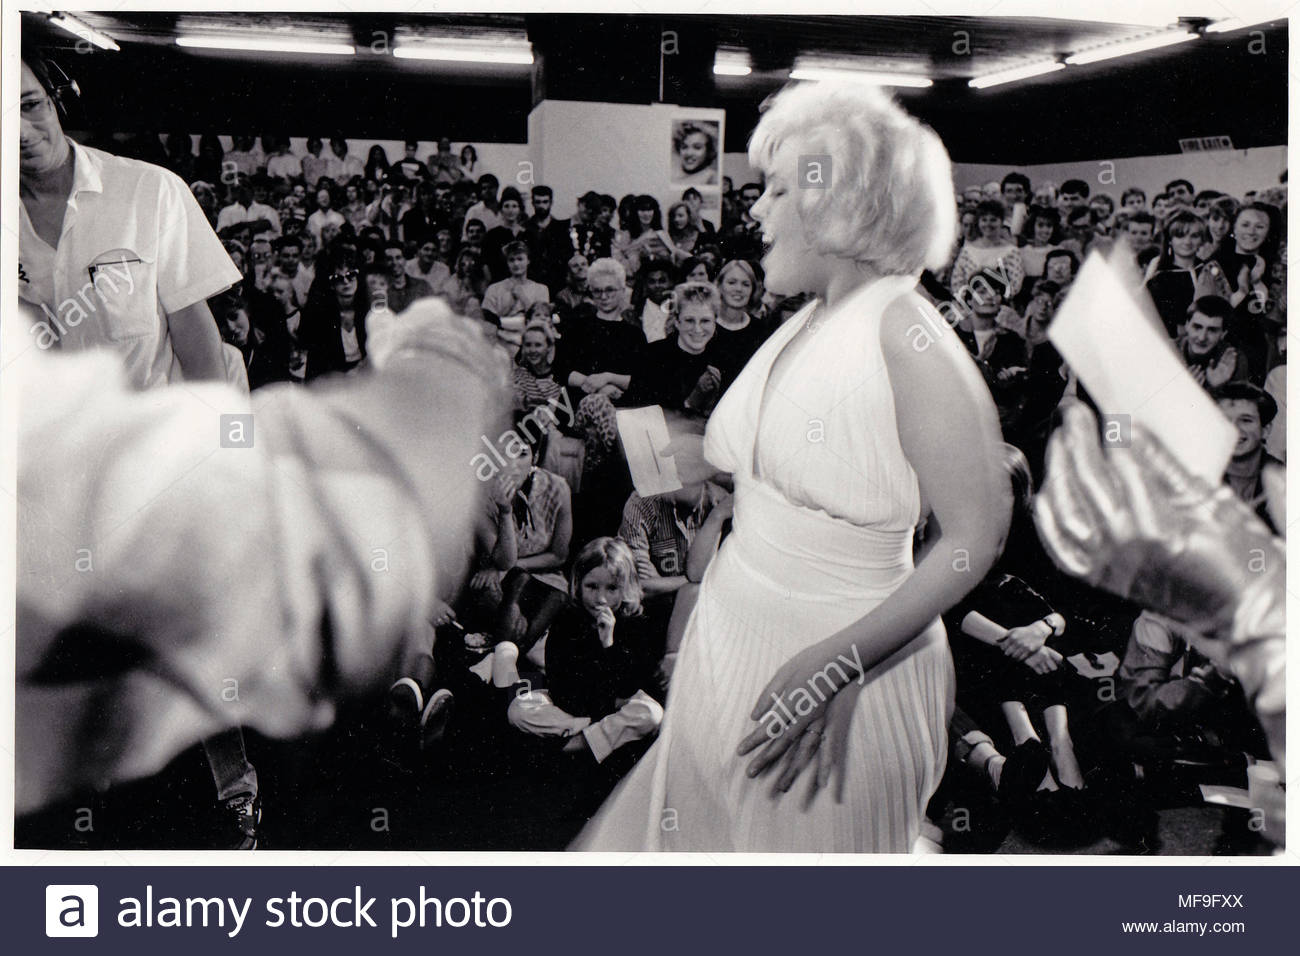 Debbie Knowles is delighted when she hears she has won the Marilyn Monroe look-alike competition in Greater Manchester, North West, England, UK photo DON TONGE photographer - Stock Image